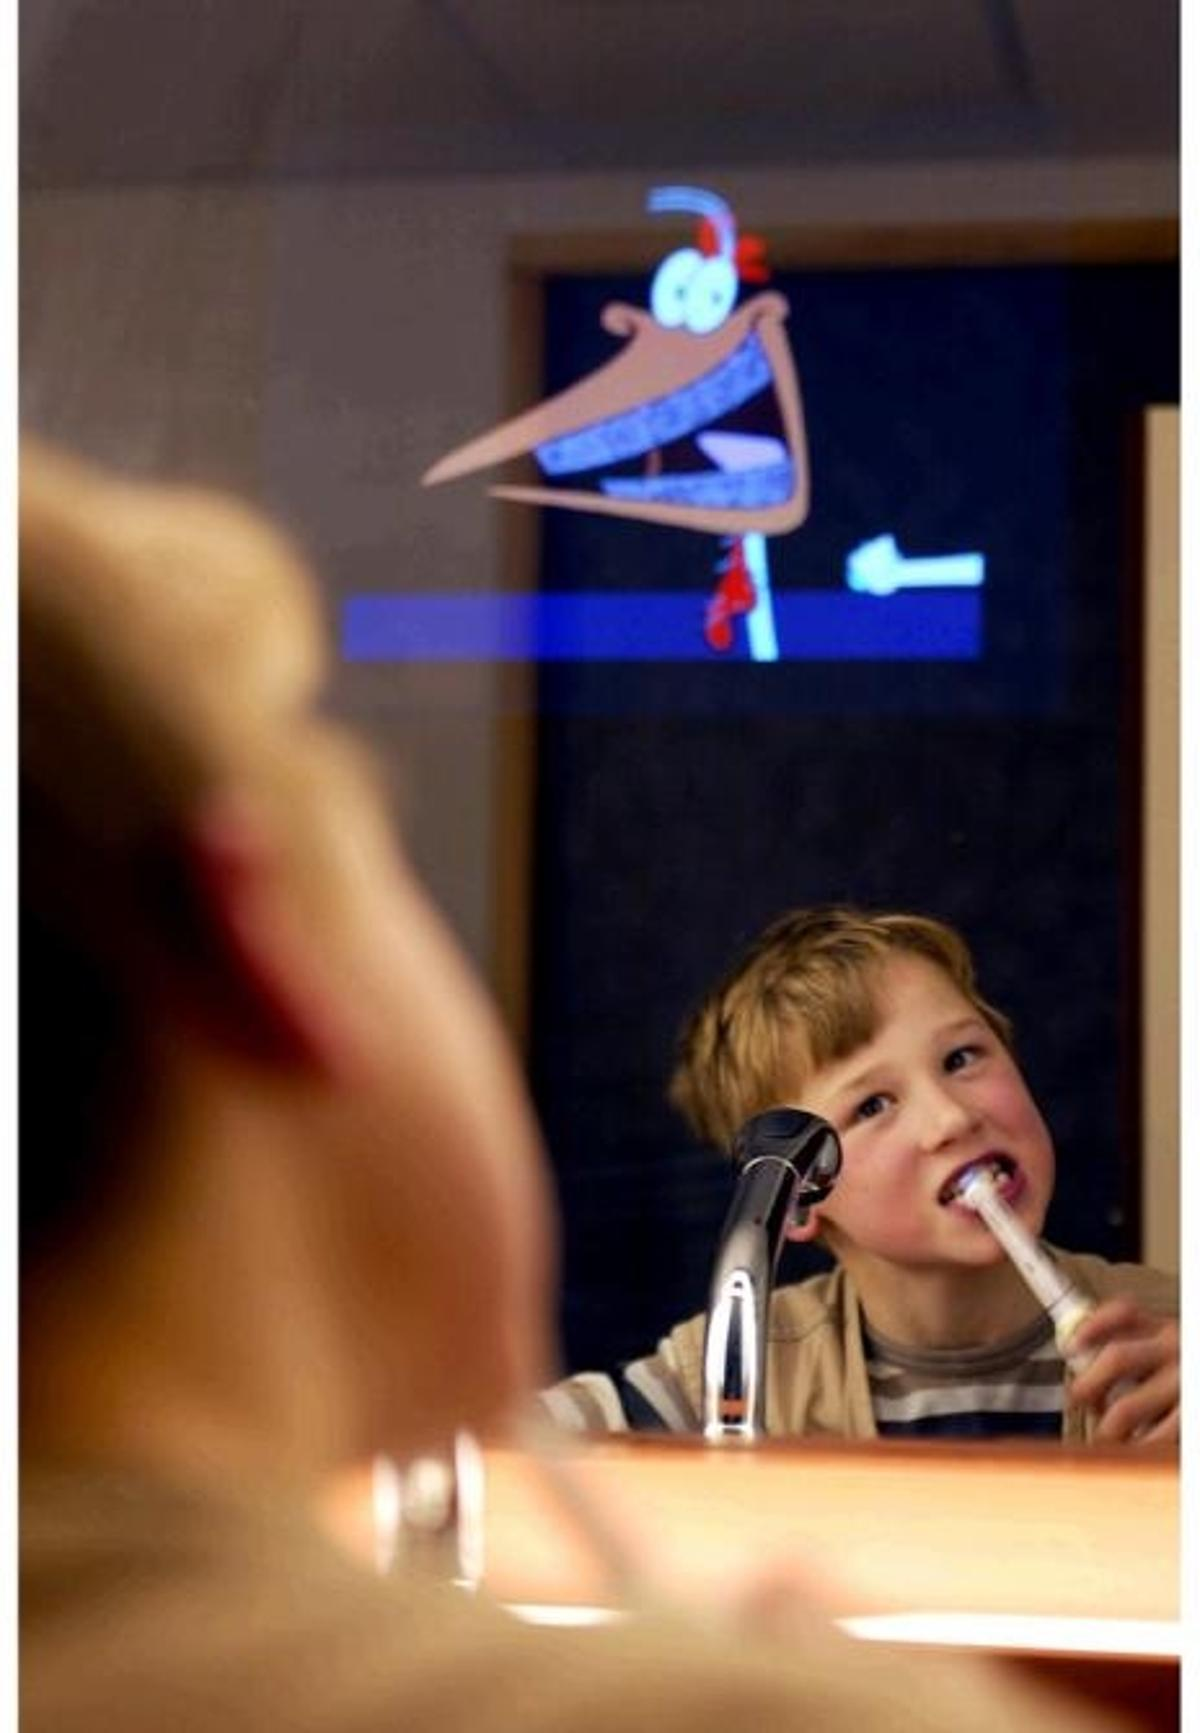 Now here's a great way to get the kids to brush their teeth and spend time in the bathroom.